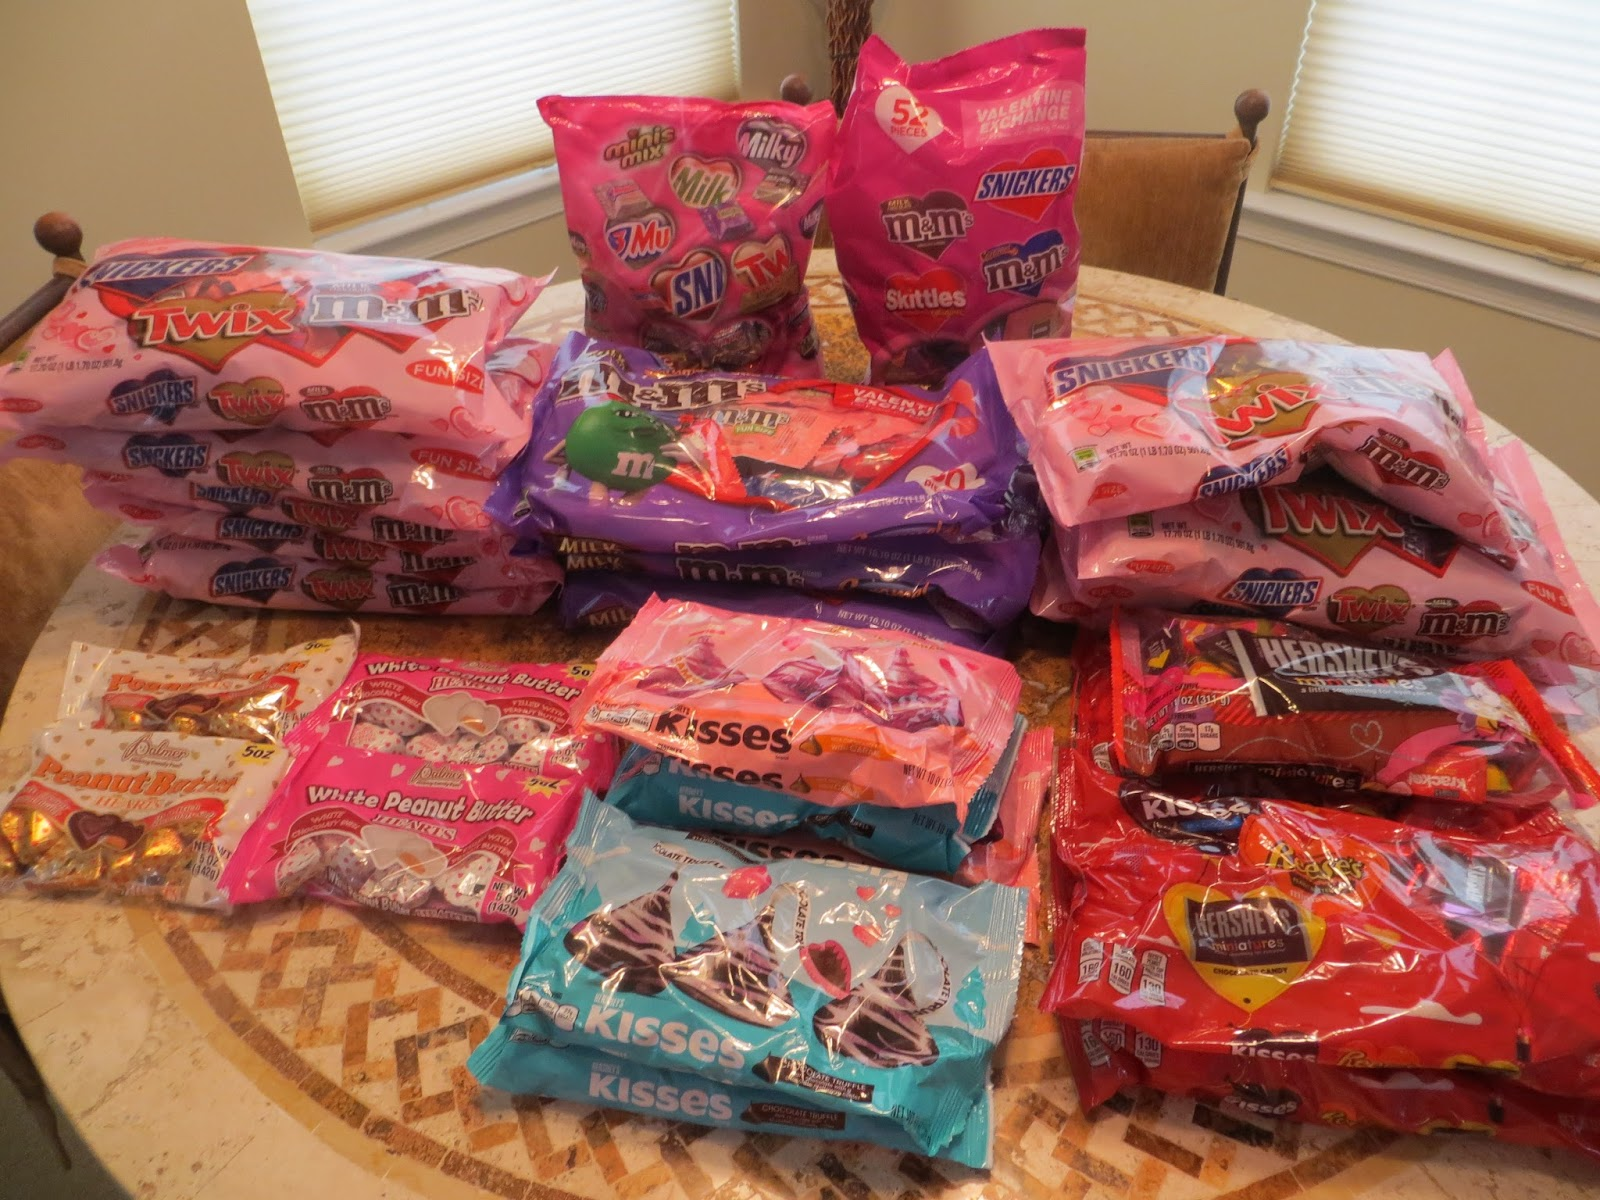 frugal things every day: i hit up the 50% off valentine's candy sale